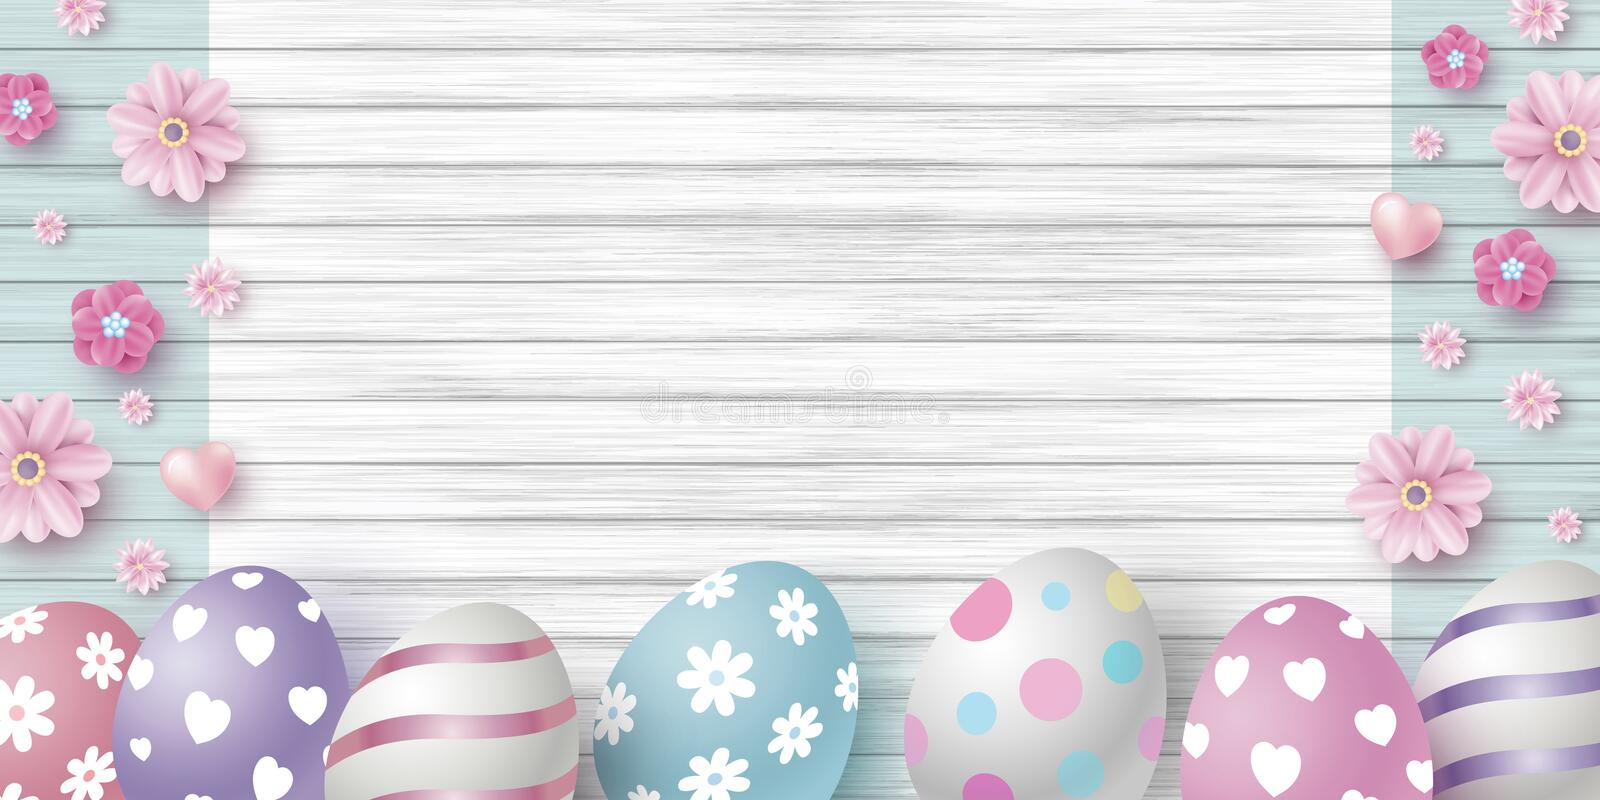 Easter day design of eggs and flowers on white wood texture background vector illustration vector illustration